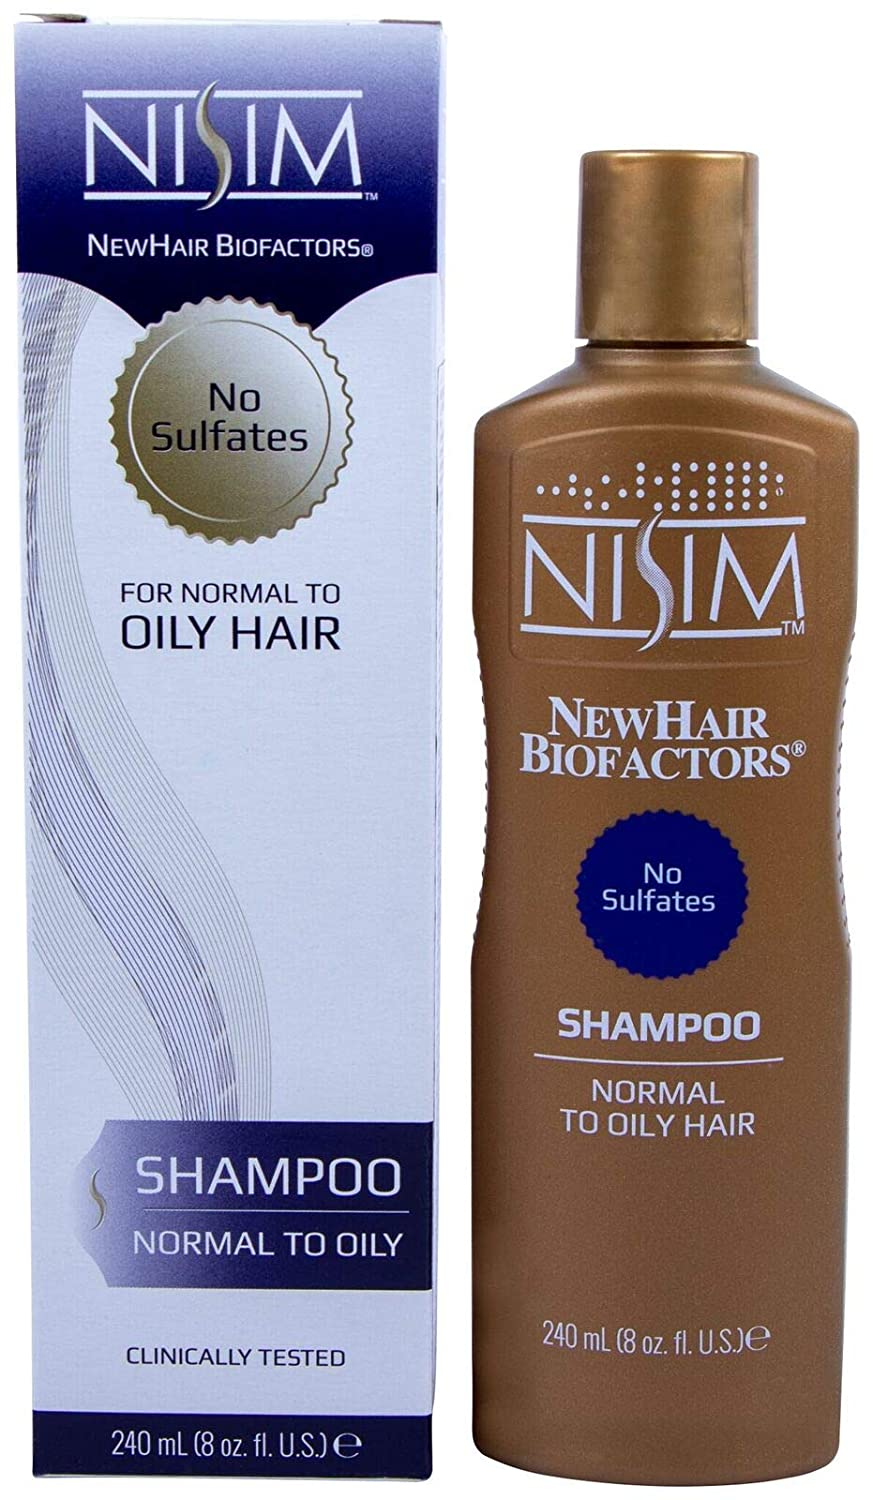 NISIM Normal To Oily Hair Shampoo 8Oz/240Ml - Hairloss Reduction In 1 Week, 240 Milliliters NS-SHAMP-NO8